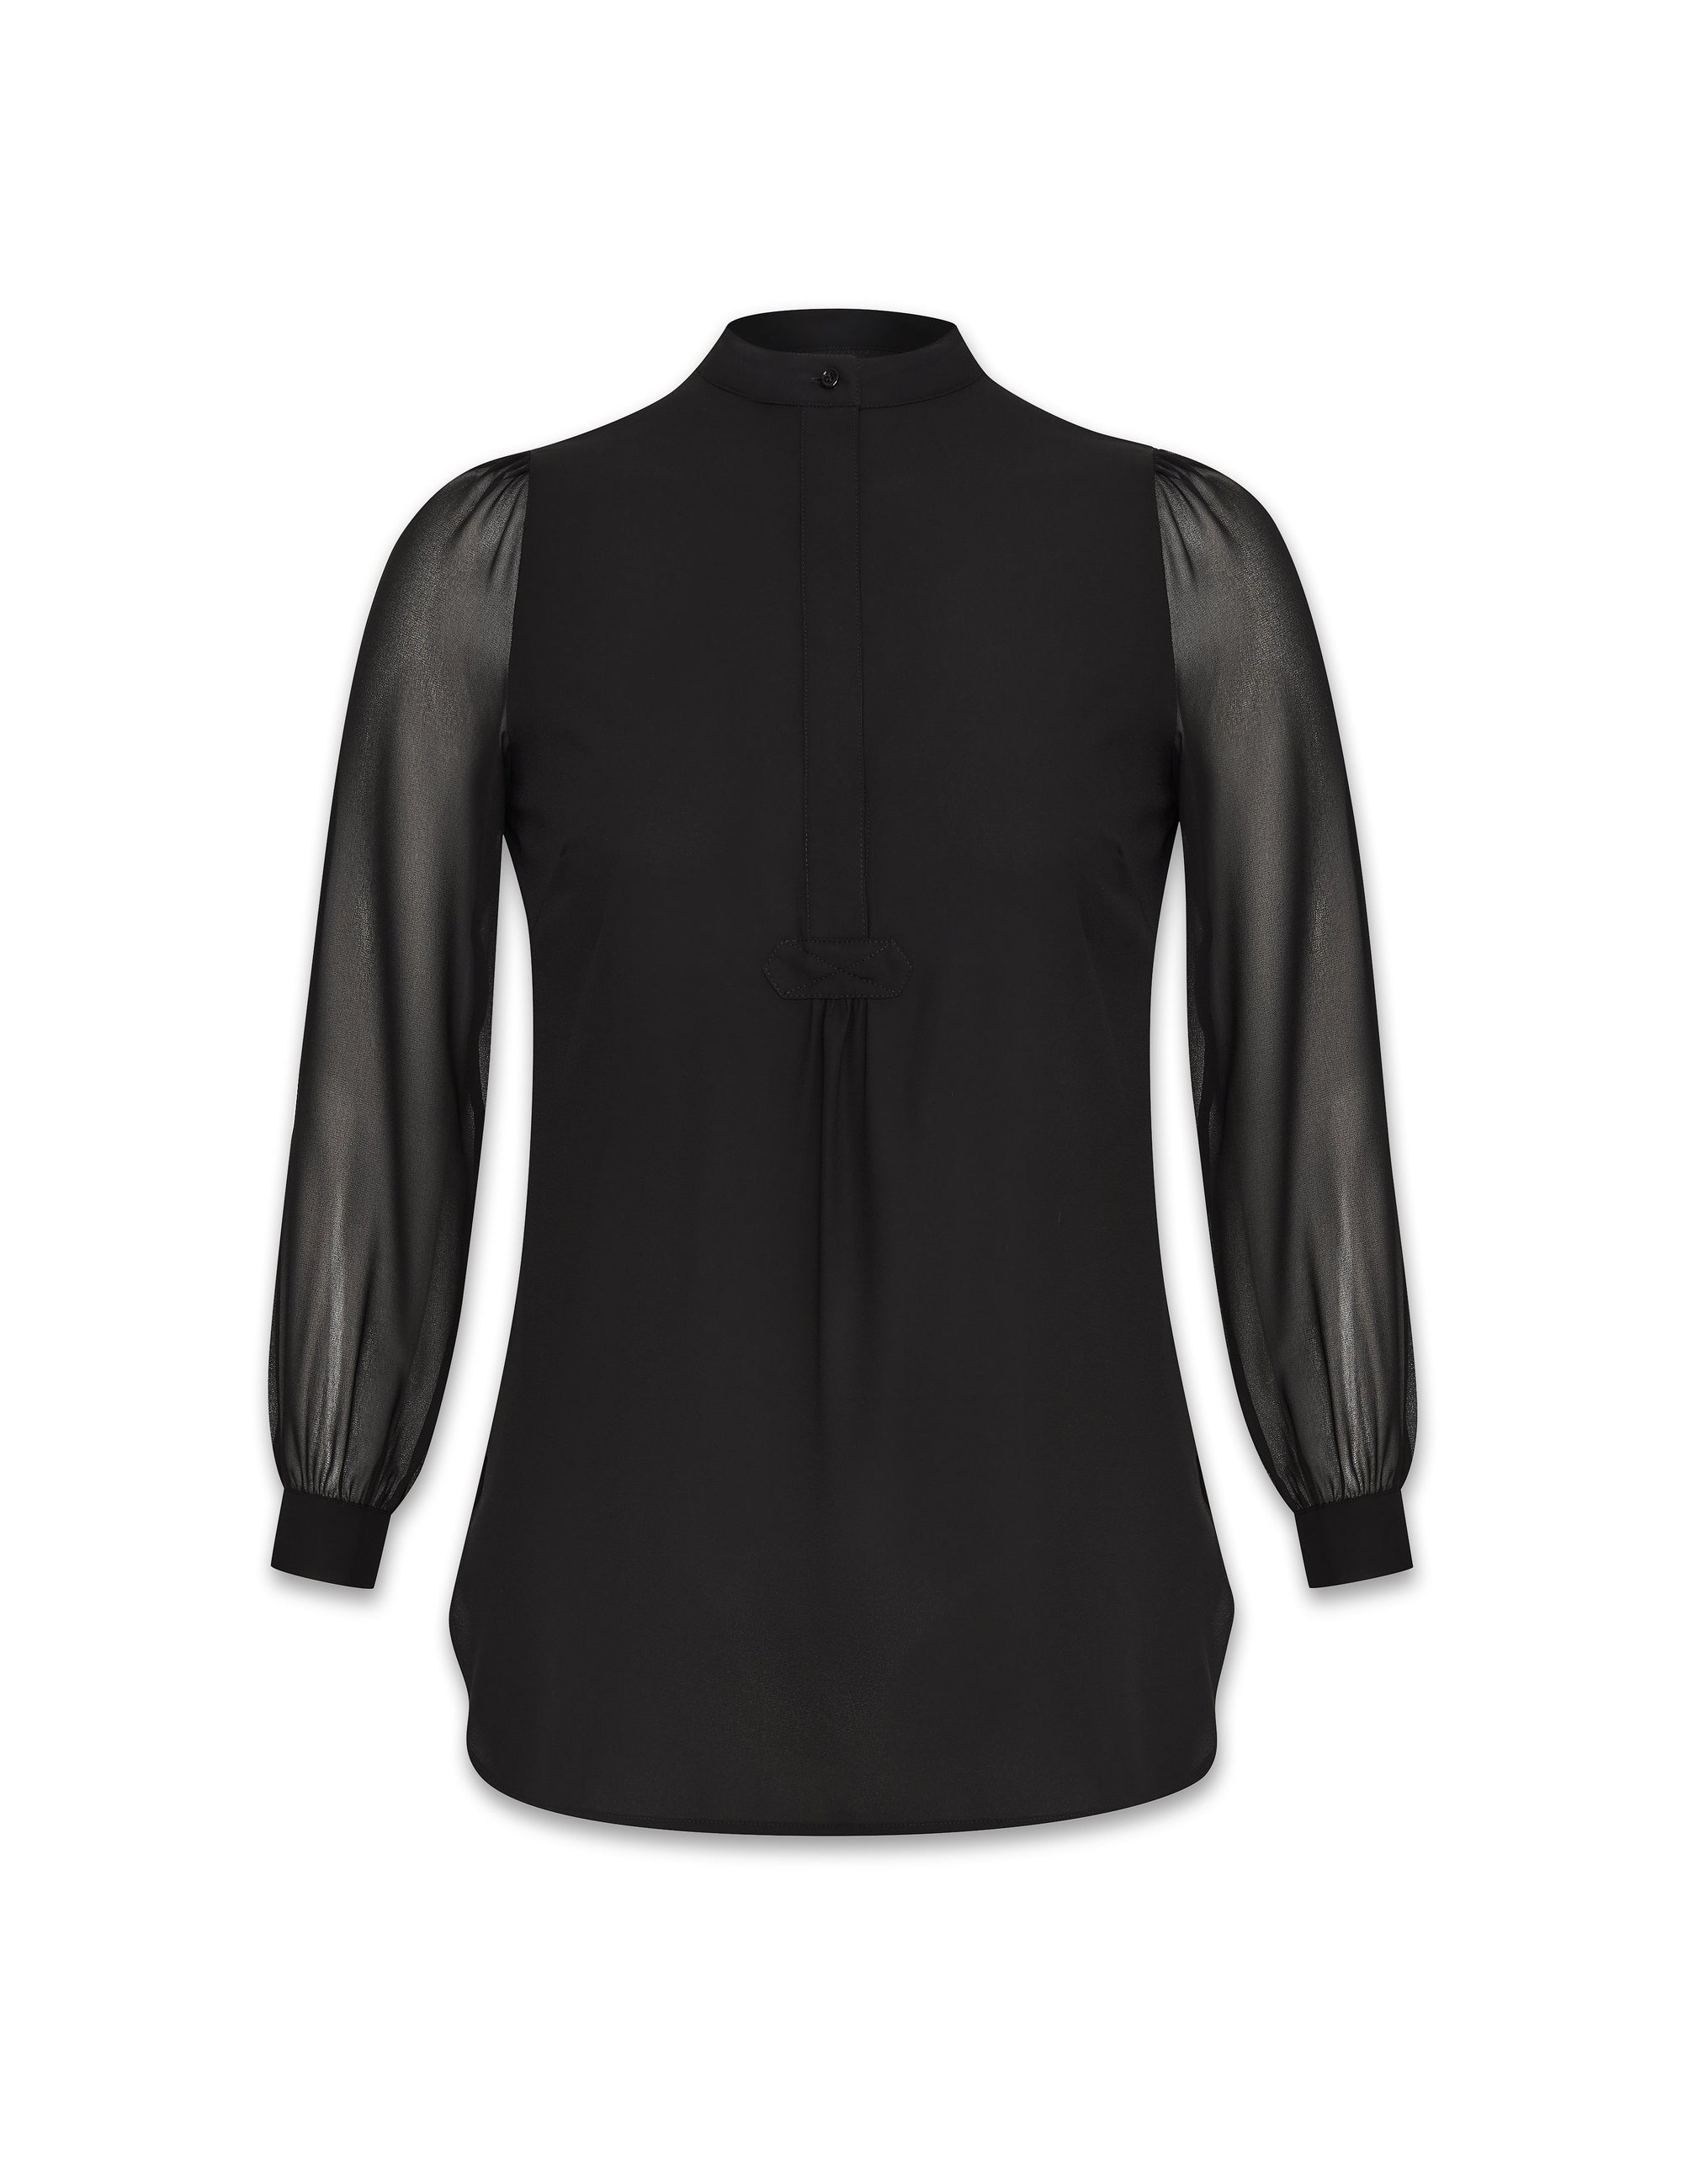 Anne Klein Black Combo Sleeve Poet Blouse